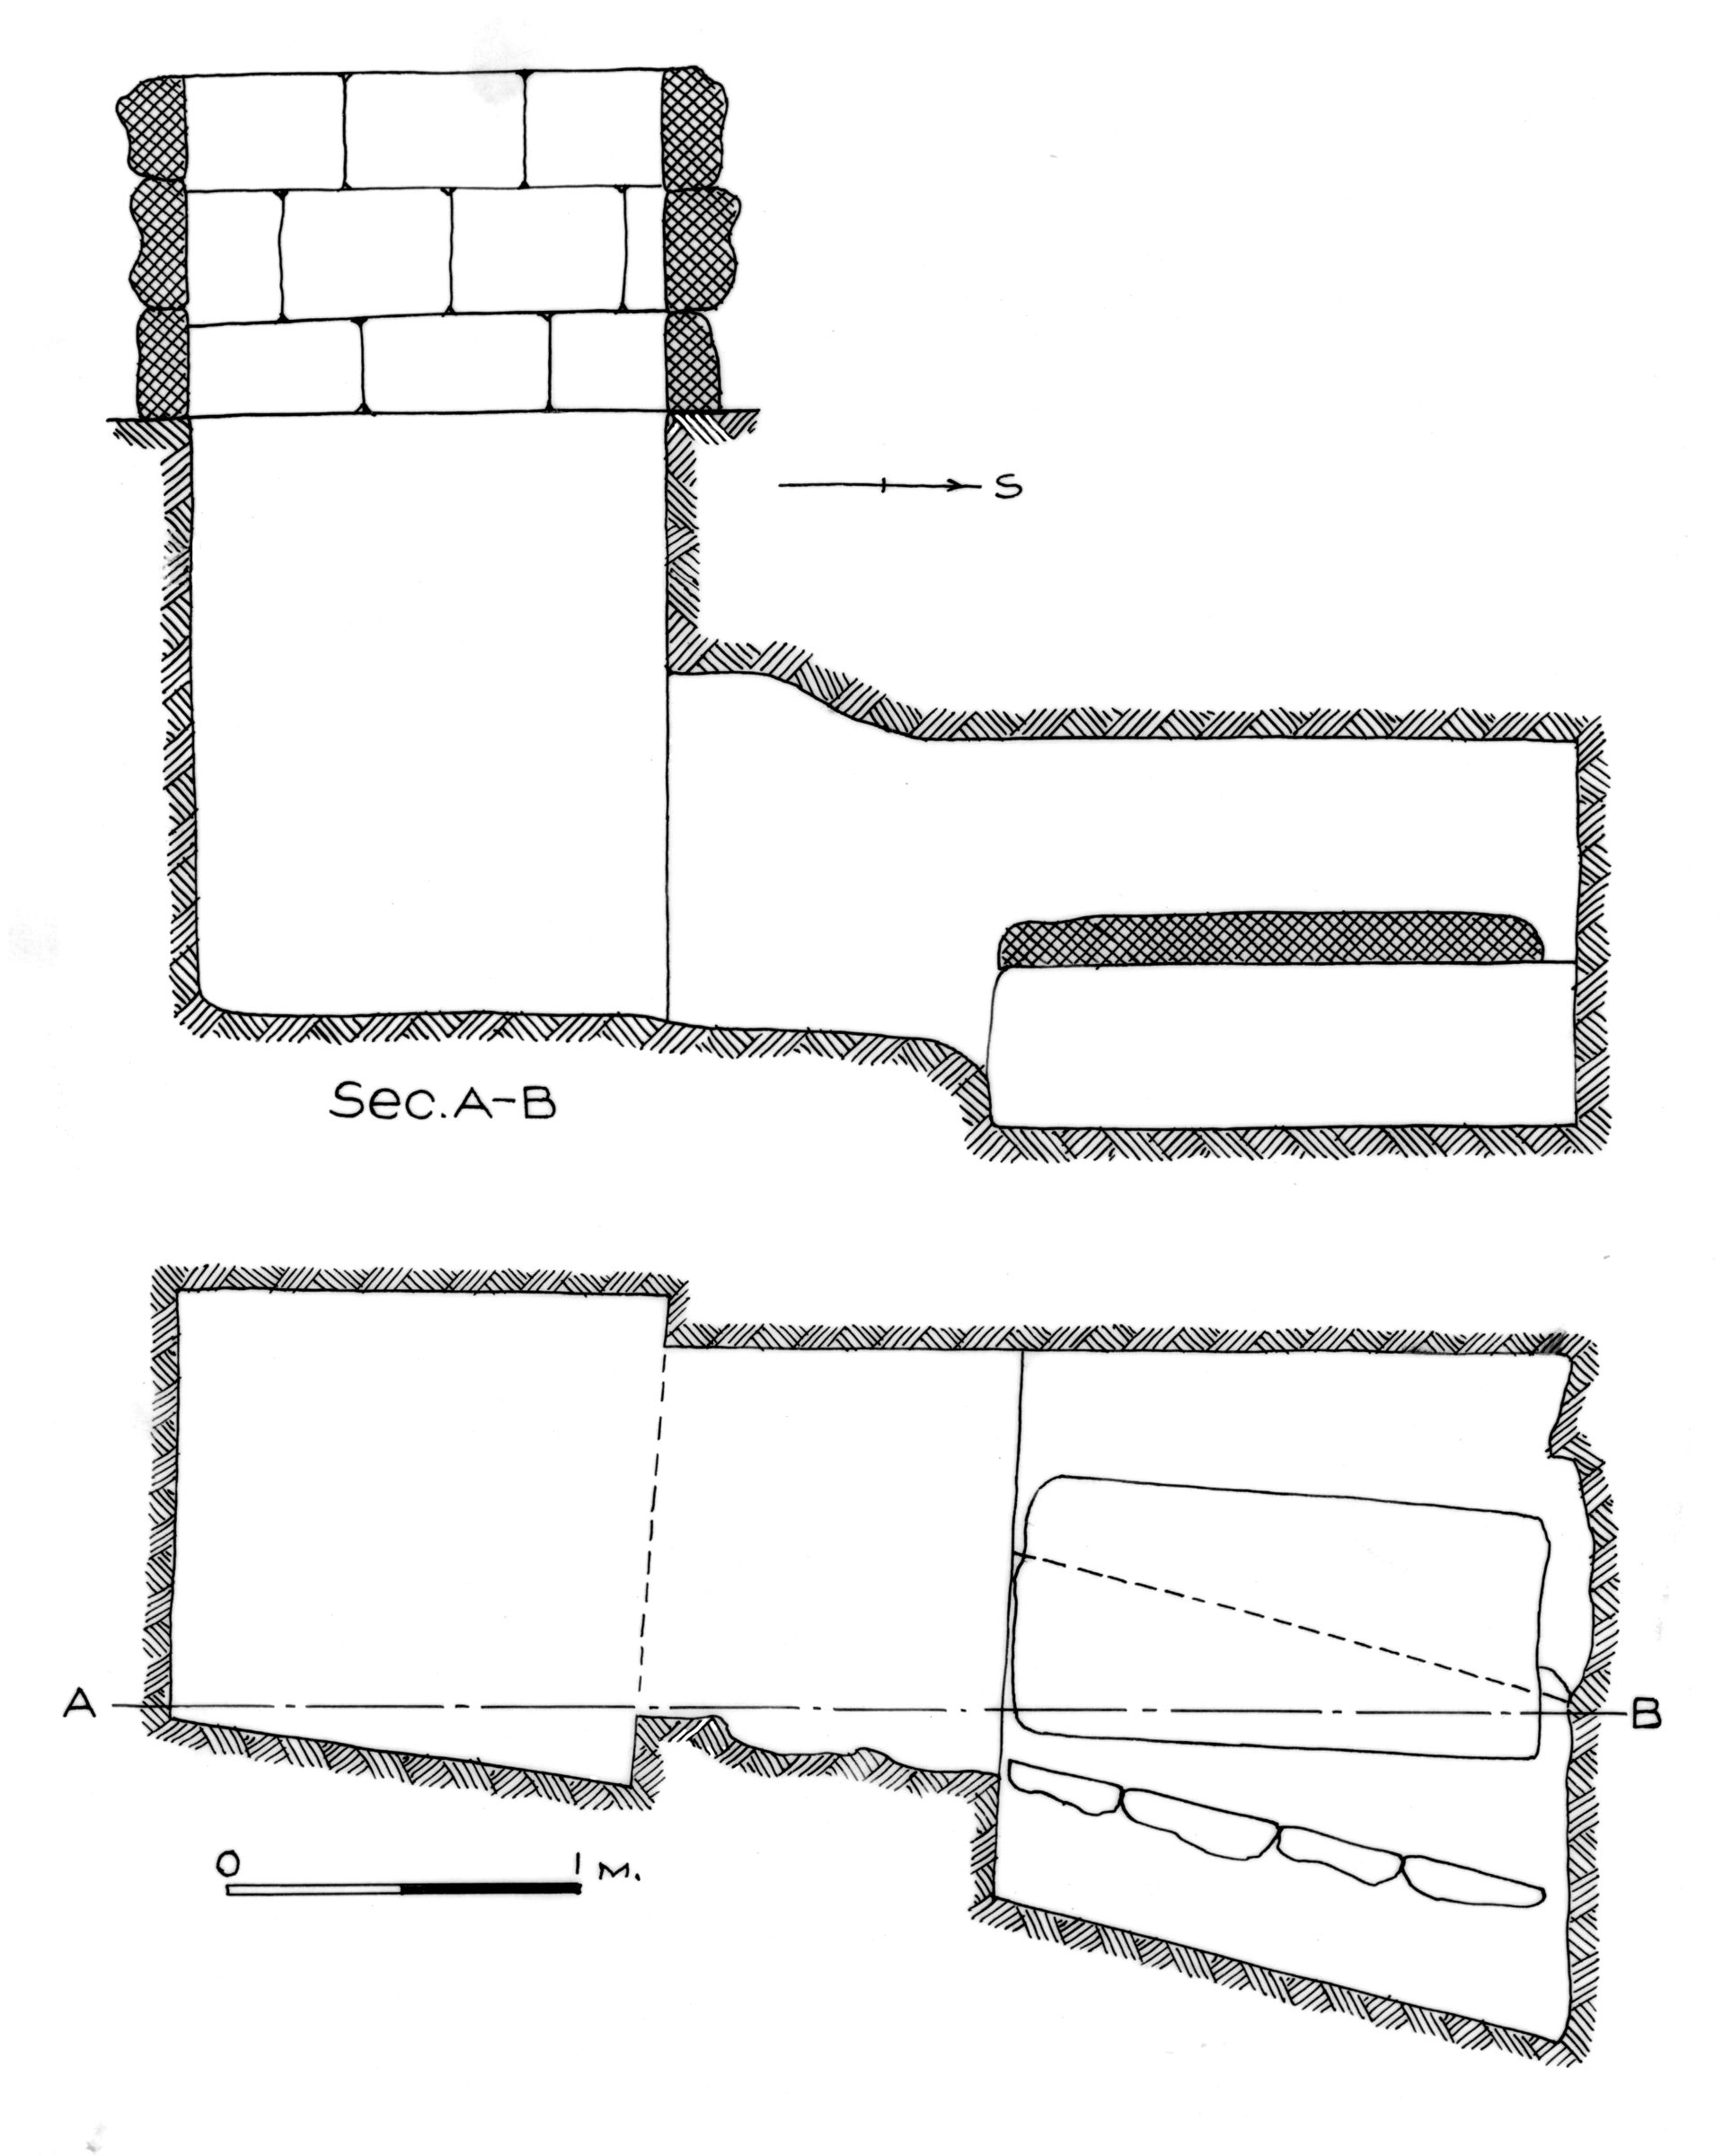 Maps and plans: G 7440, Shaft Y (= G 7441)